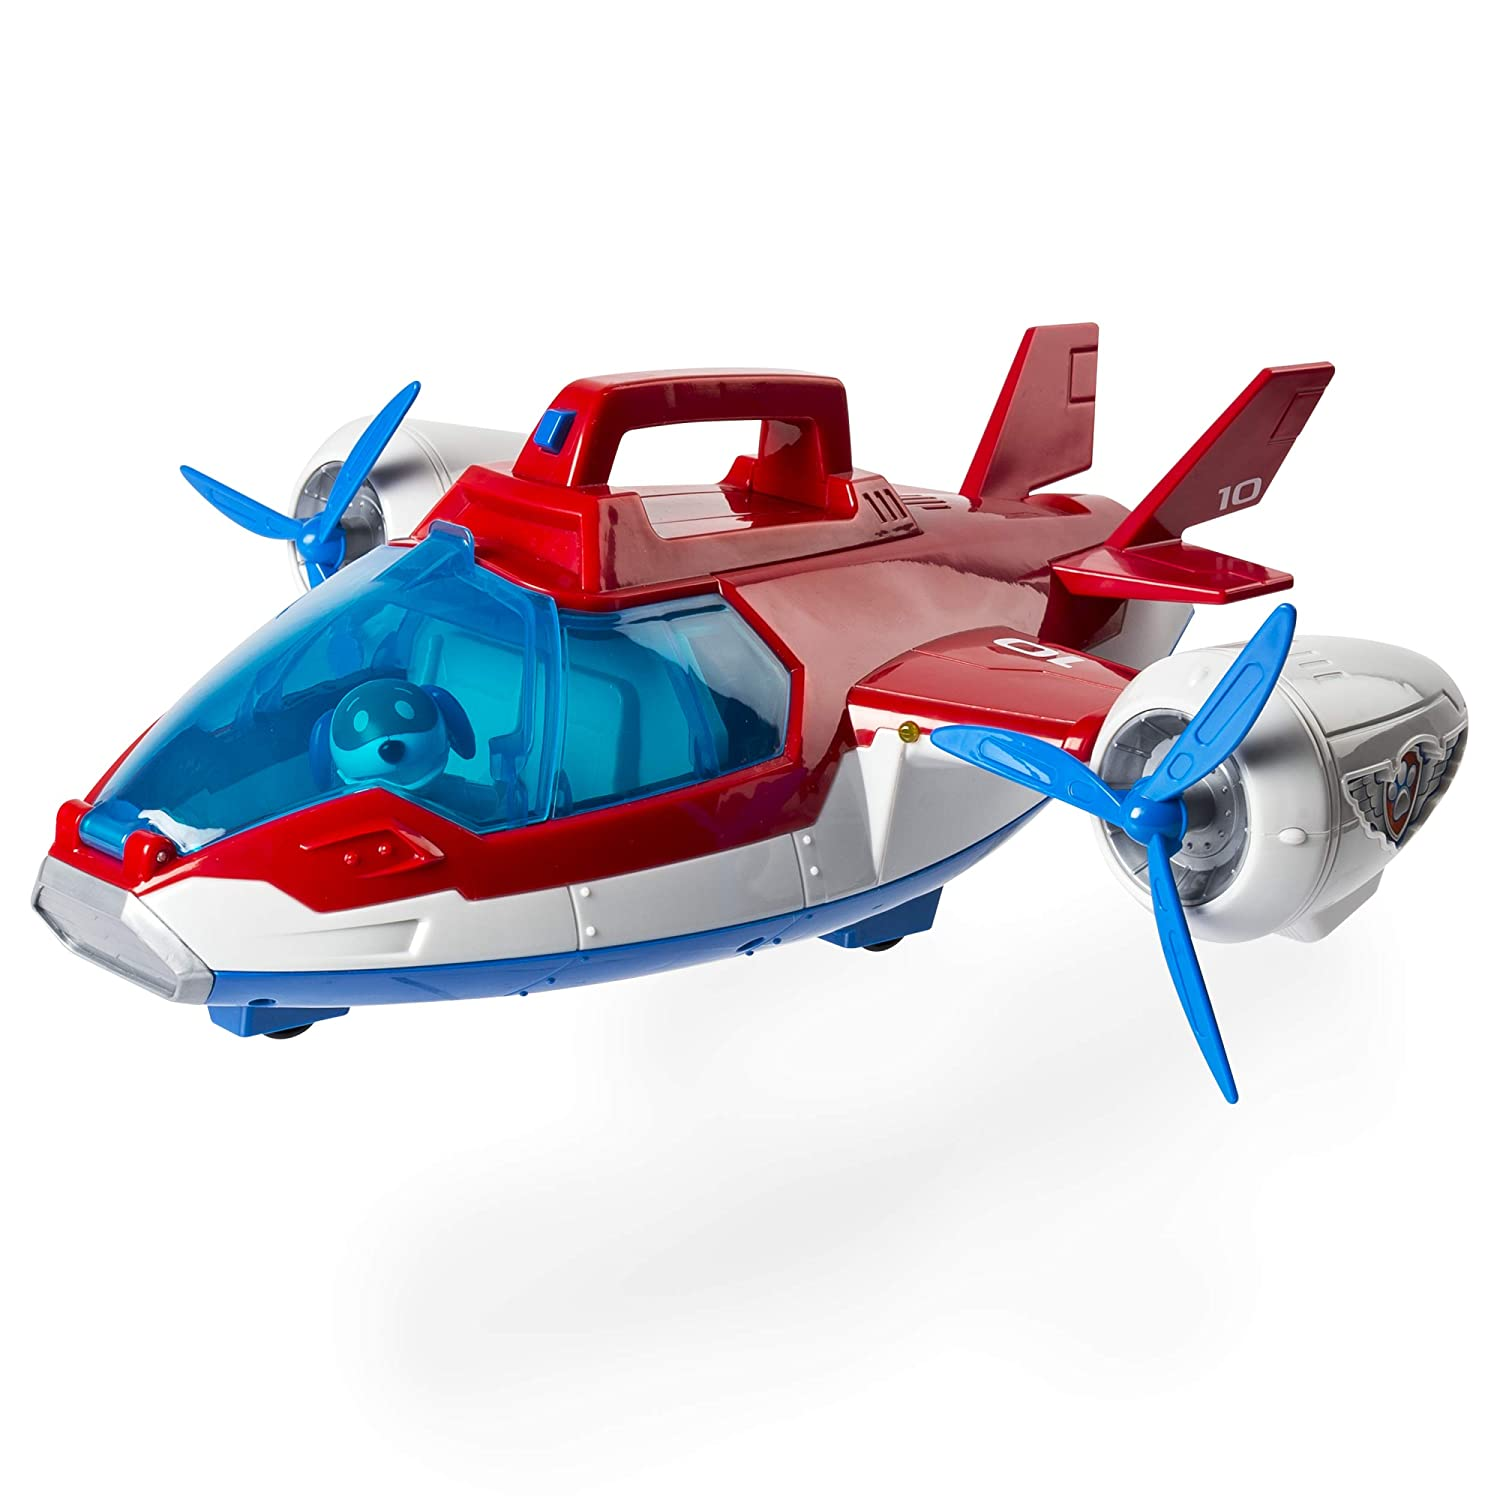 Amazon Exclusive Spin Master 6038328.0 Paw Patrol Mission Paw Air Patroller